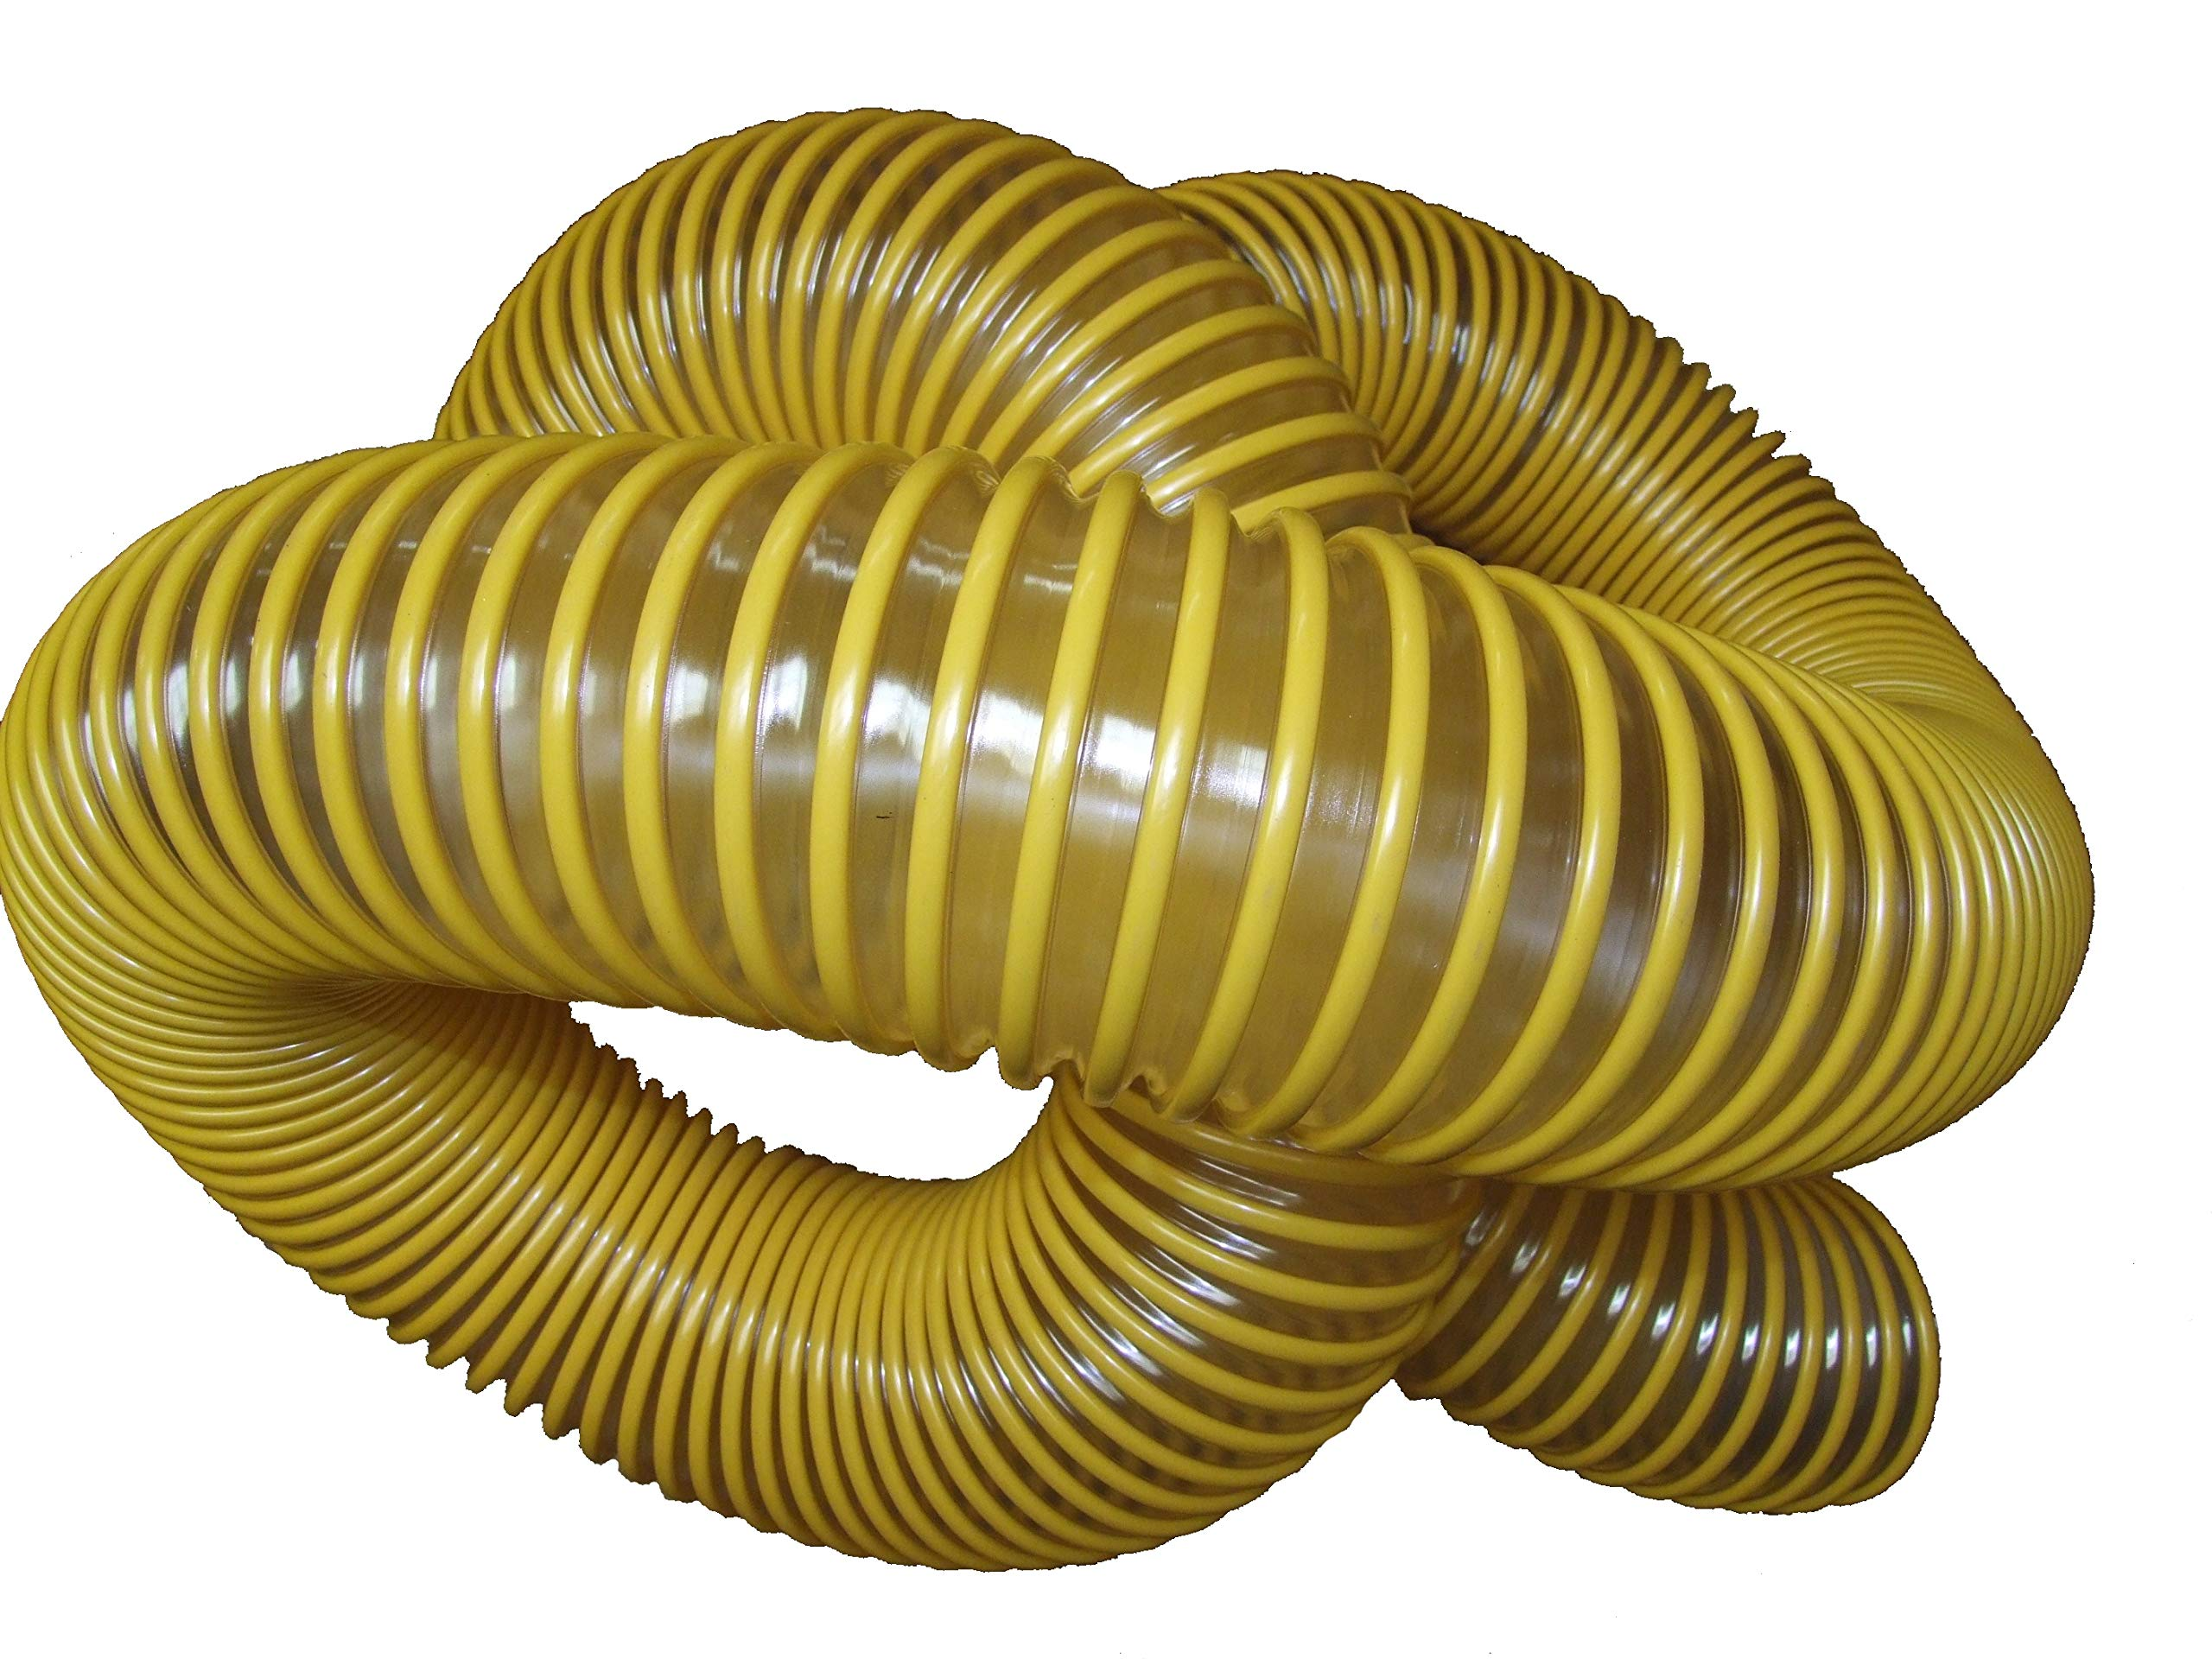 Leaf Vacuum Collection Yard Hose (6 inch x 8 Feet) | Clear Urethane .030'' Wall ... (Yellow, 8') by Universal Hose and Fittings